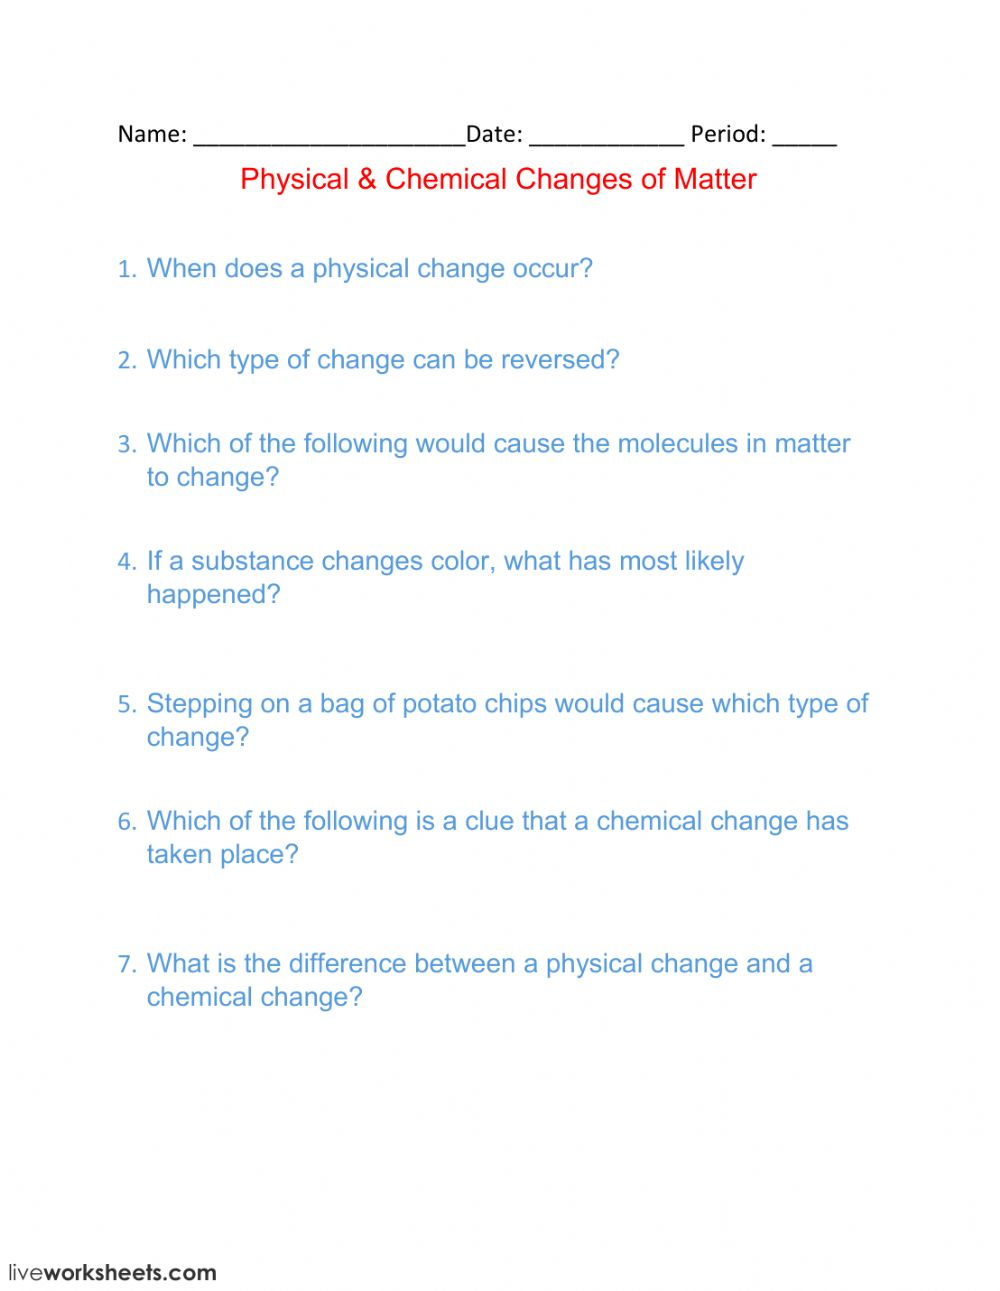 Properties of Matter Worksheet   Crossout   TpT moreover  likewise Worksheet  Chemical Physical Change   Matter   Science clroom moreover Changes In States Of Matter Worksheets Chem Definitions Of together with 3rd grade science matter worksheets additionally changes in matter grade 5 worksheets – balaicza in addition  in addition  additionally grade 7 science matter worksheets together with states of matter worksheets 4th grade – redoakdeer additionally Chemical and Physical Changes Worksheet   Homedressage moreover matter worksheets moreover Physical   Chemical Changes of Matter   Interactive worksheet furthermore  in addition  likewise . on physical changes of matter worksheets